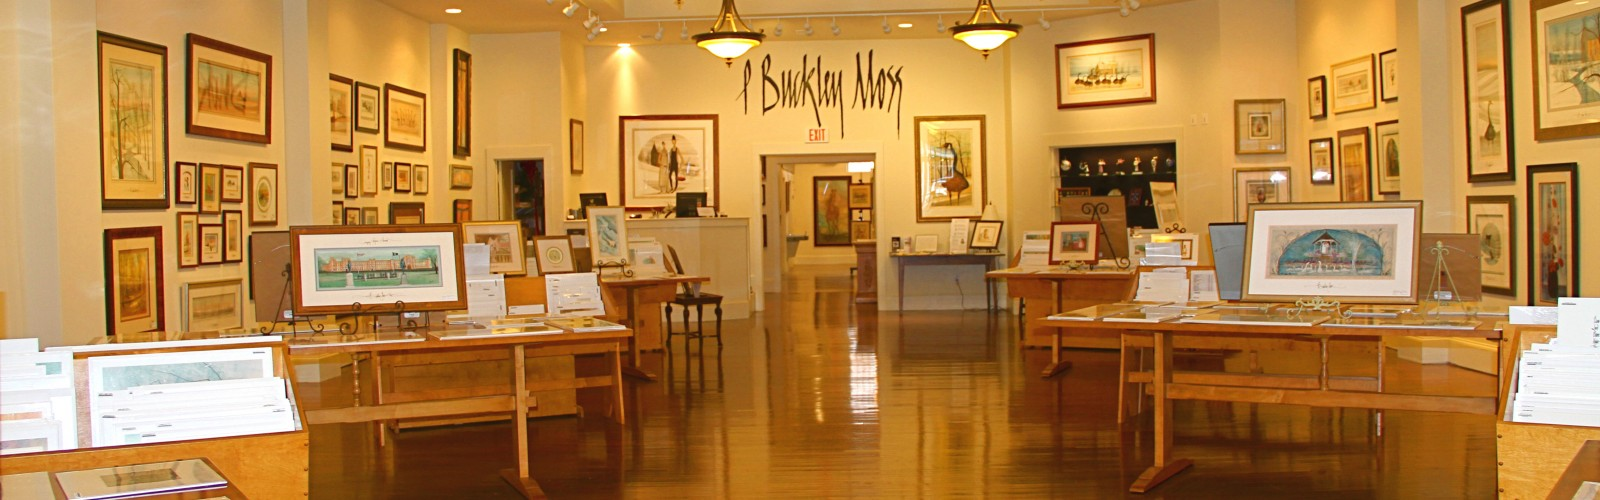 P. Buckley Moss Gallery